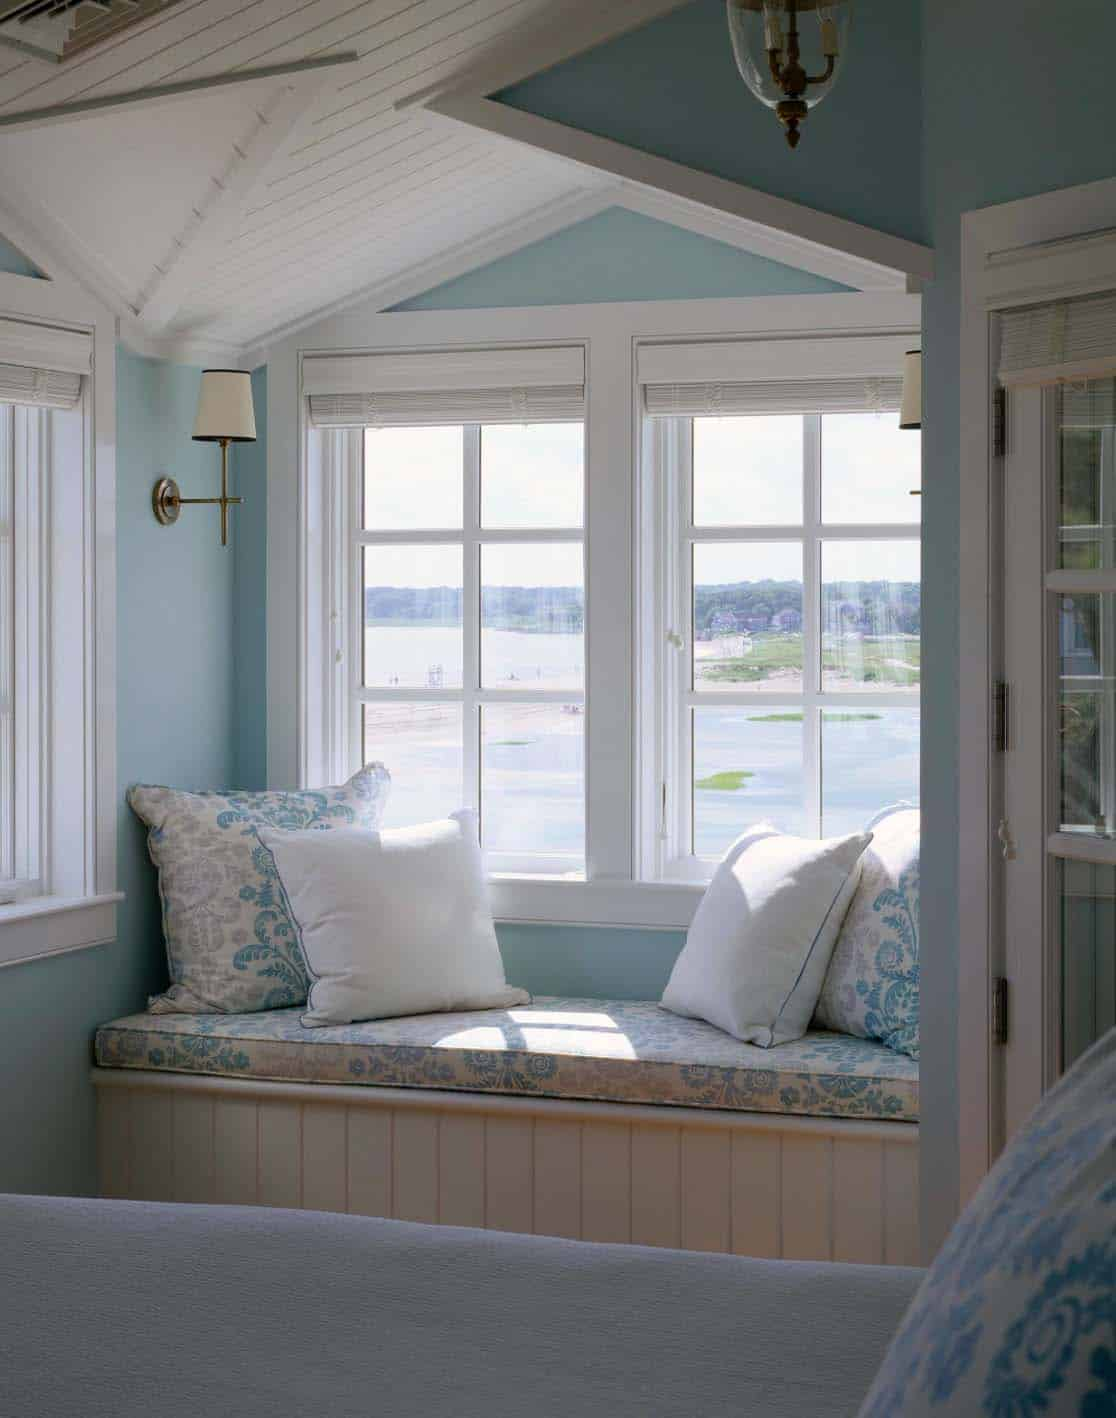 44 window nooks framing spectacular views for 2016 window design